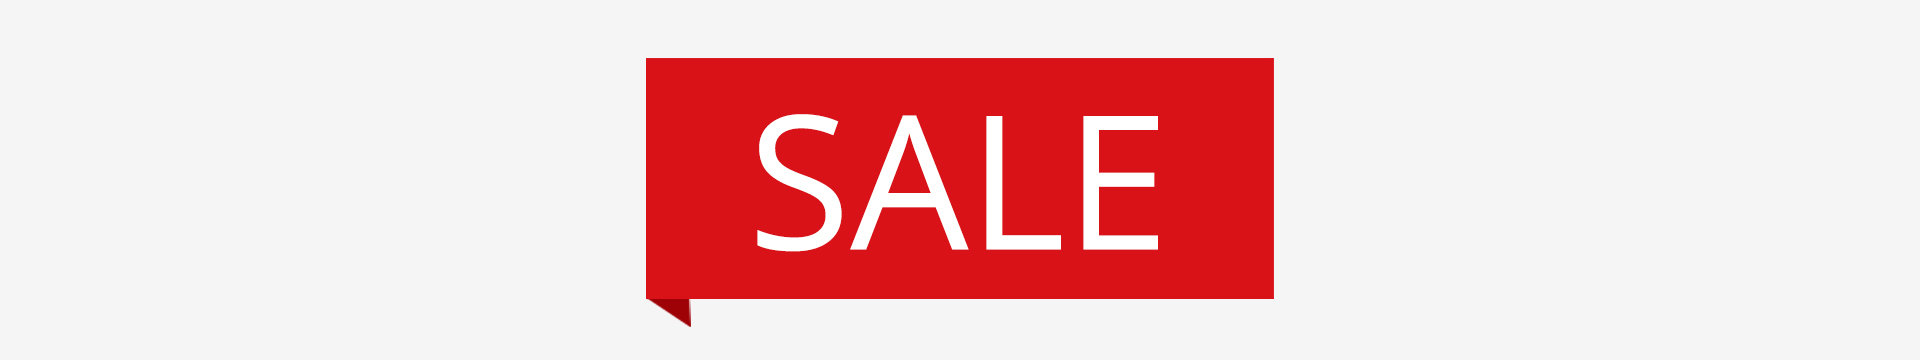 Sale - Animal Health Product Deals